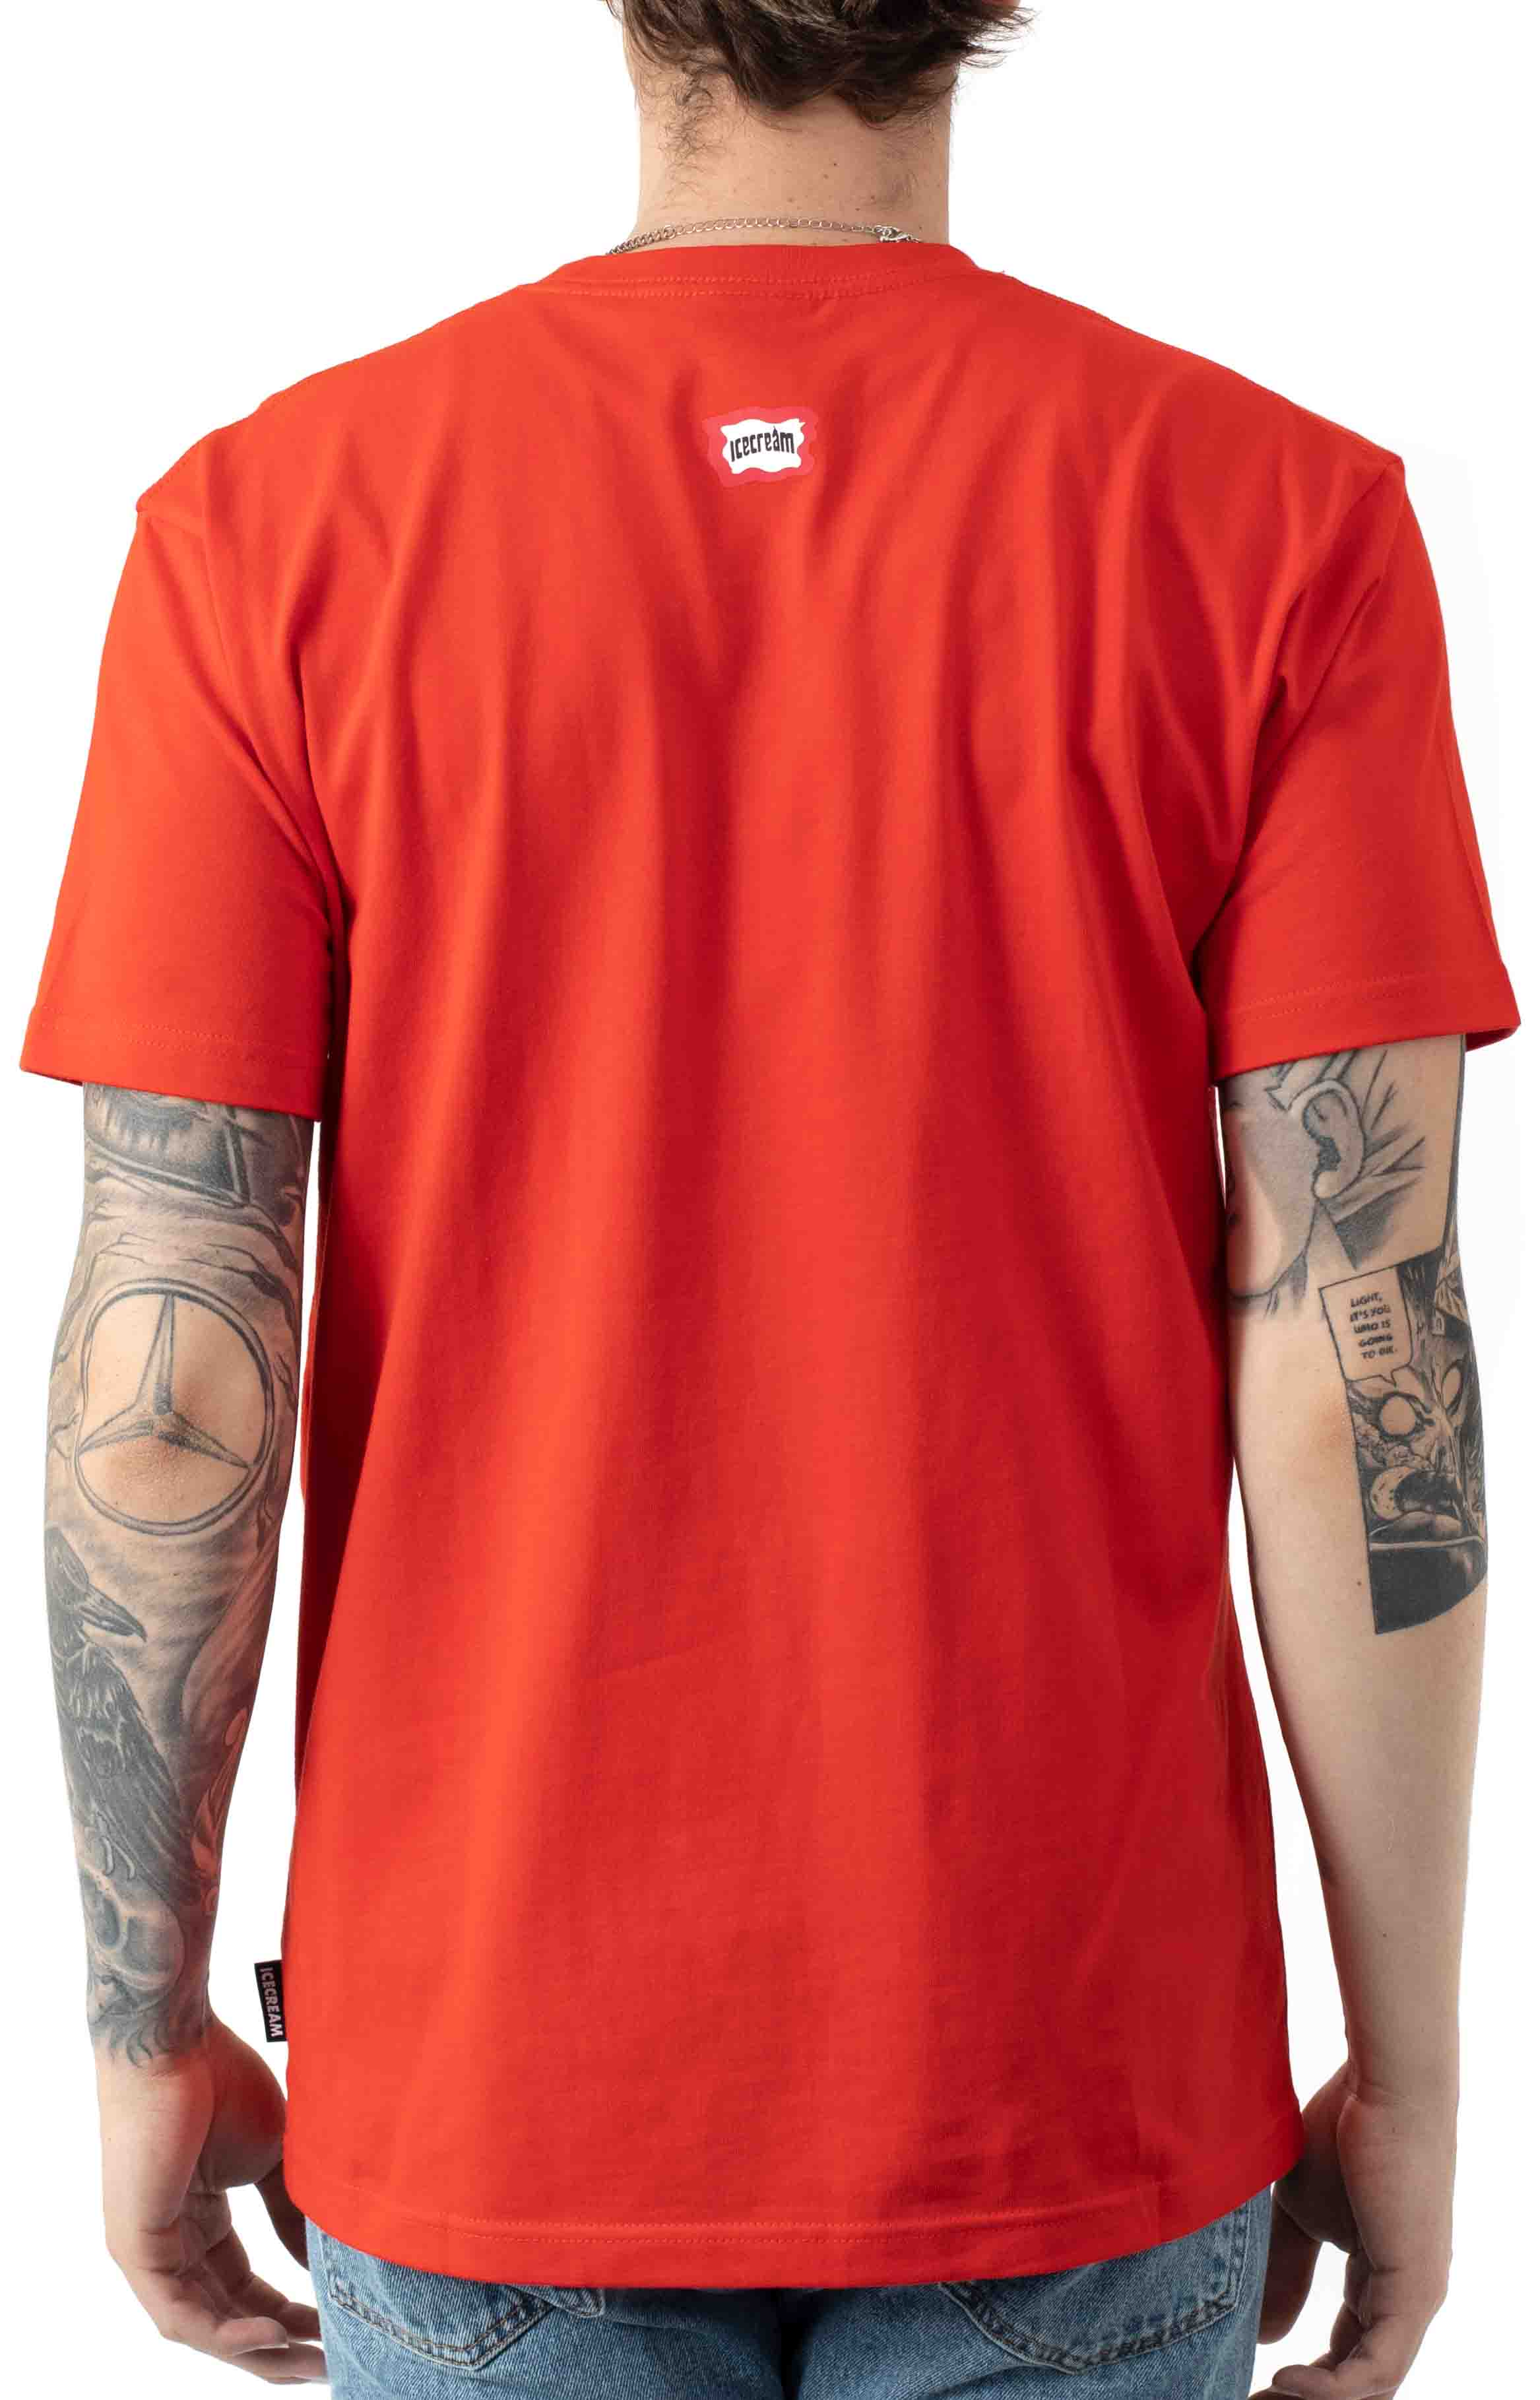 Cash Rules T-Shirt - Fiery Red 3